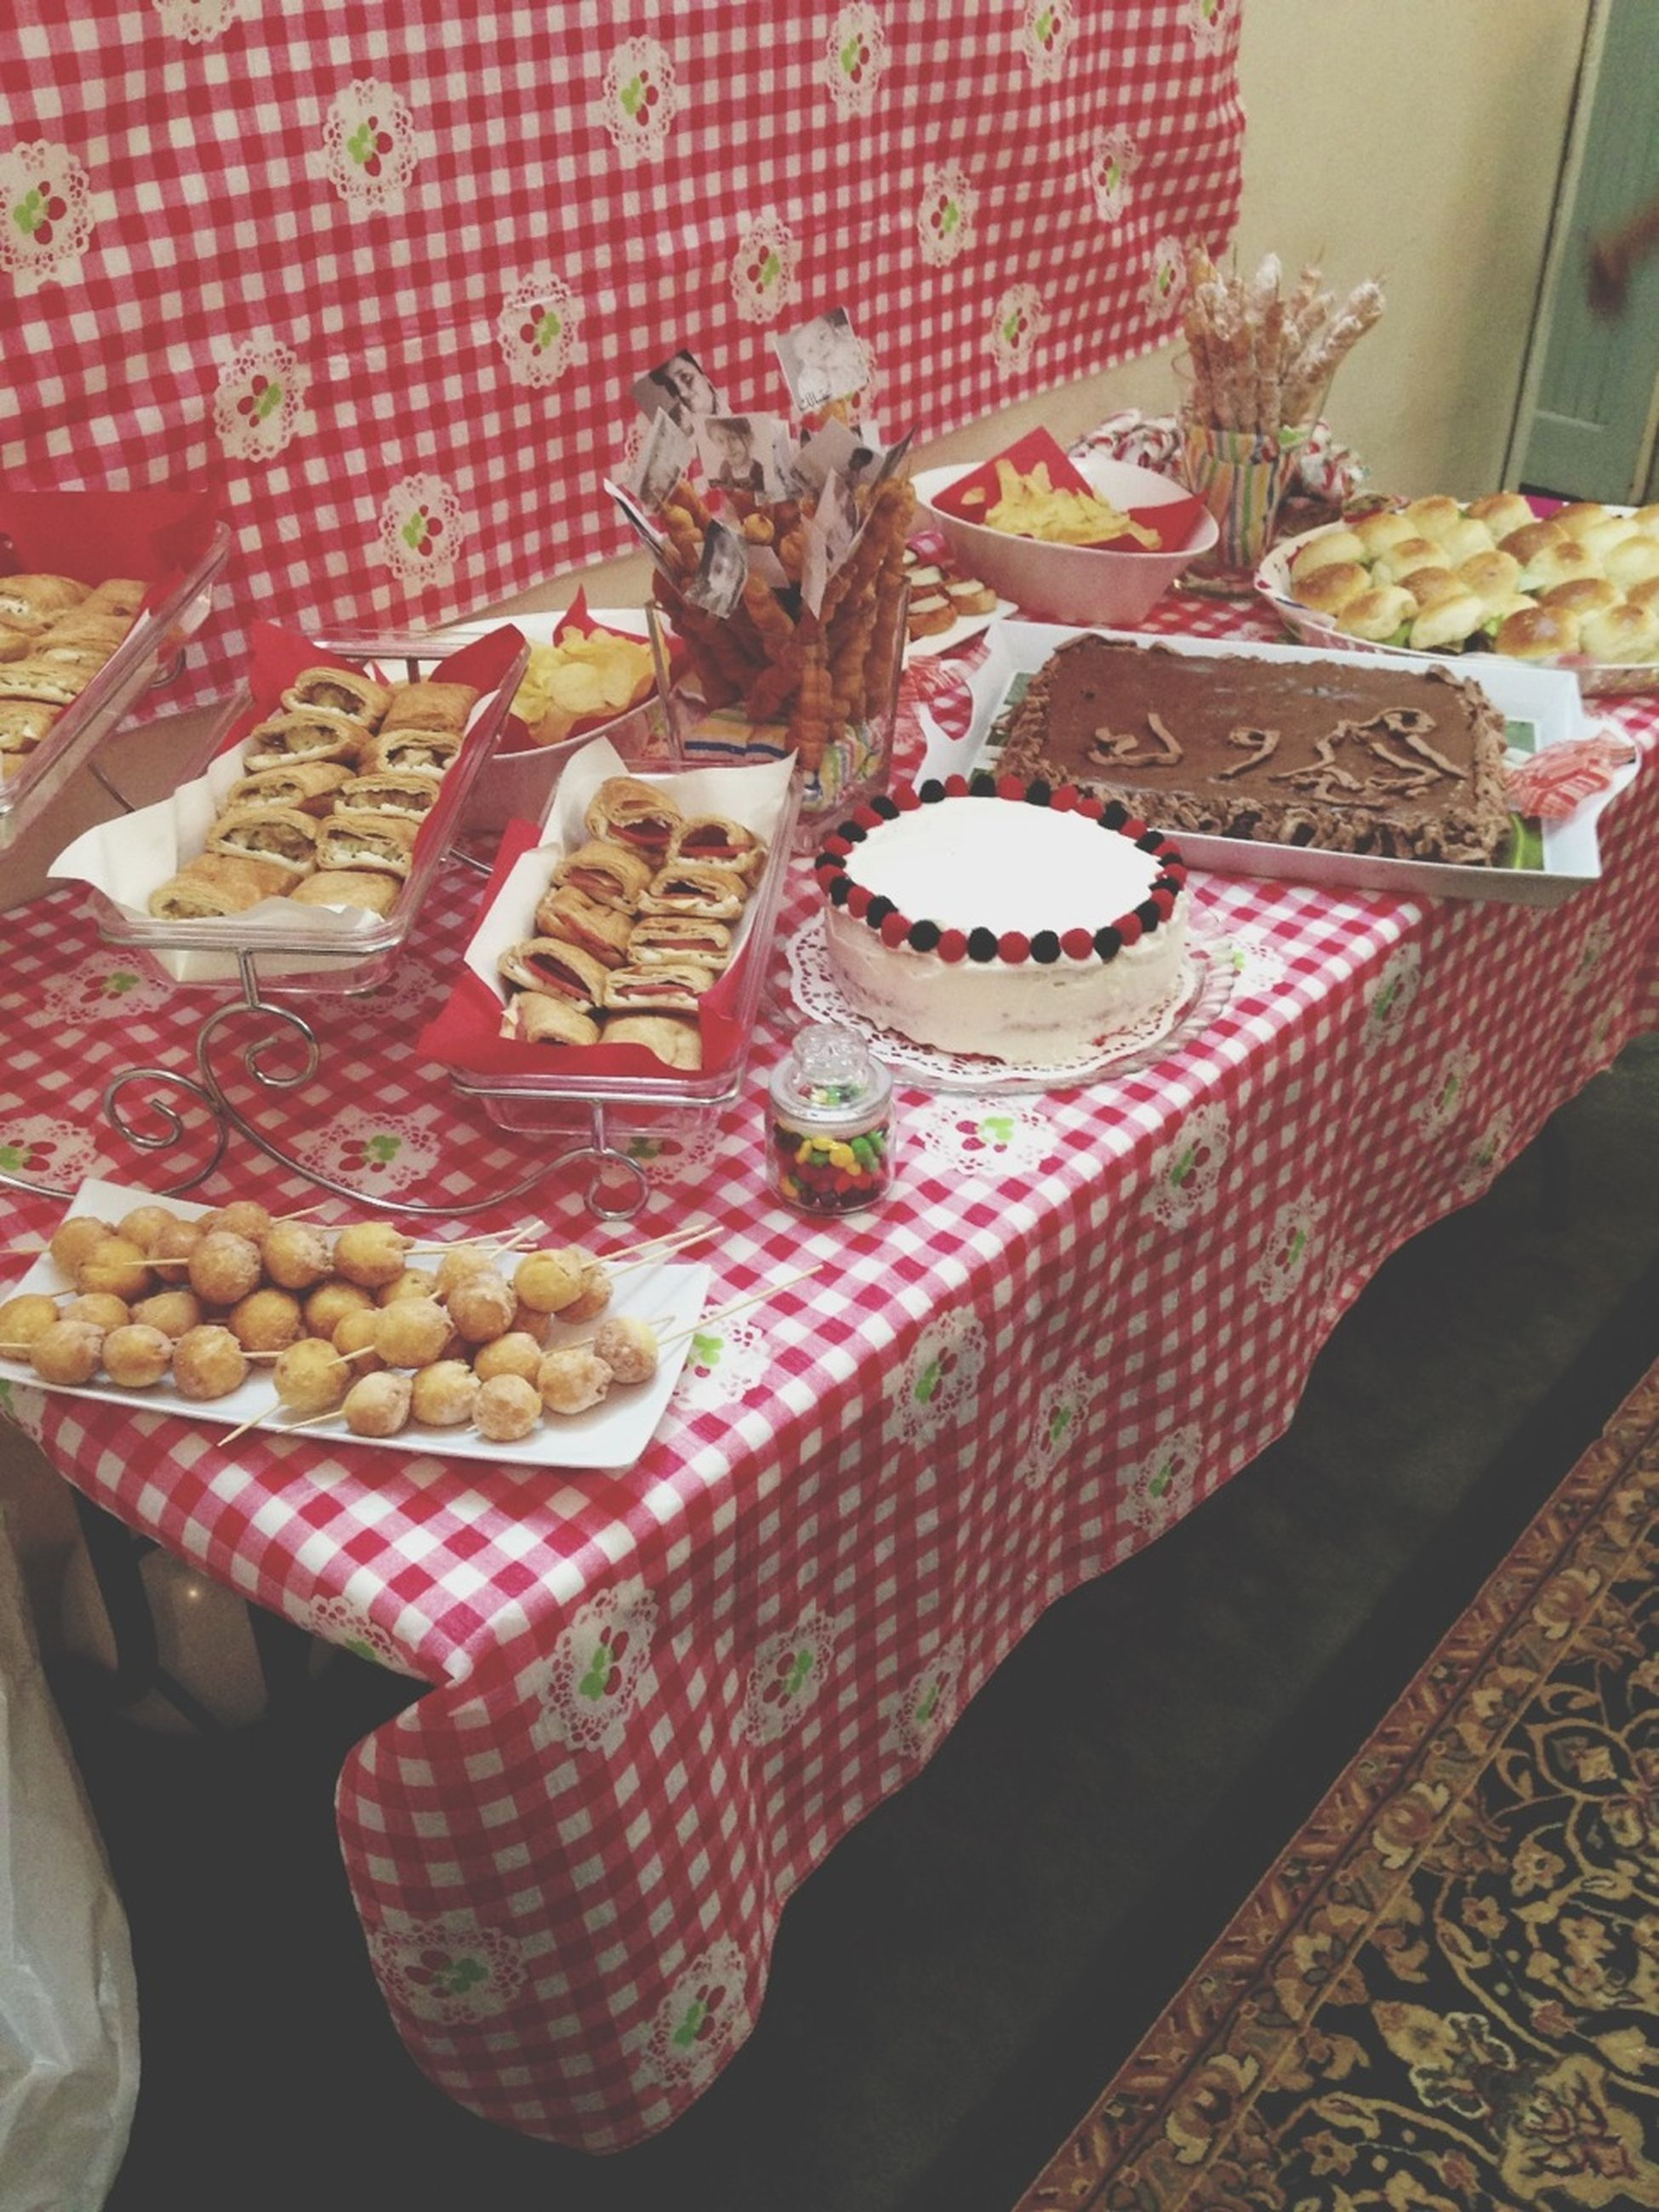 indoors, food and drink, still life, sweet food, table, food, freshness, dessert, cake, unhealthy eating, decoration, ready-to-eat, indulgence, plate, close-up, no people, high angle view, tradition, home interior, variation